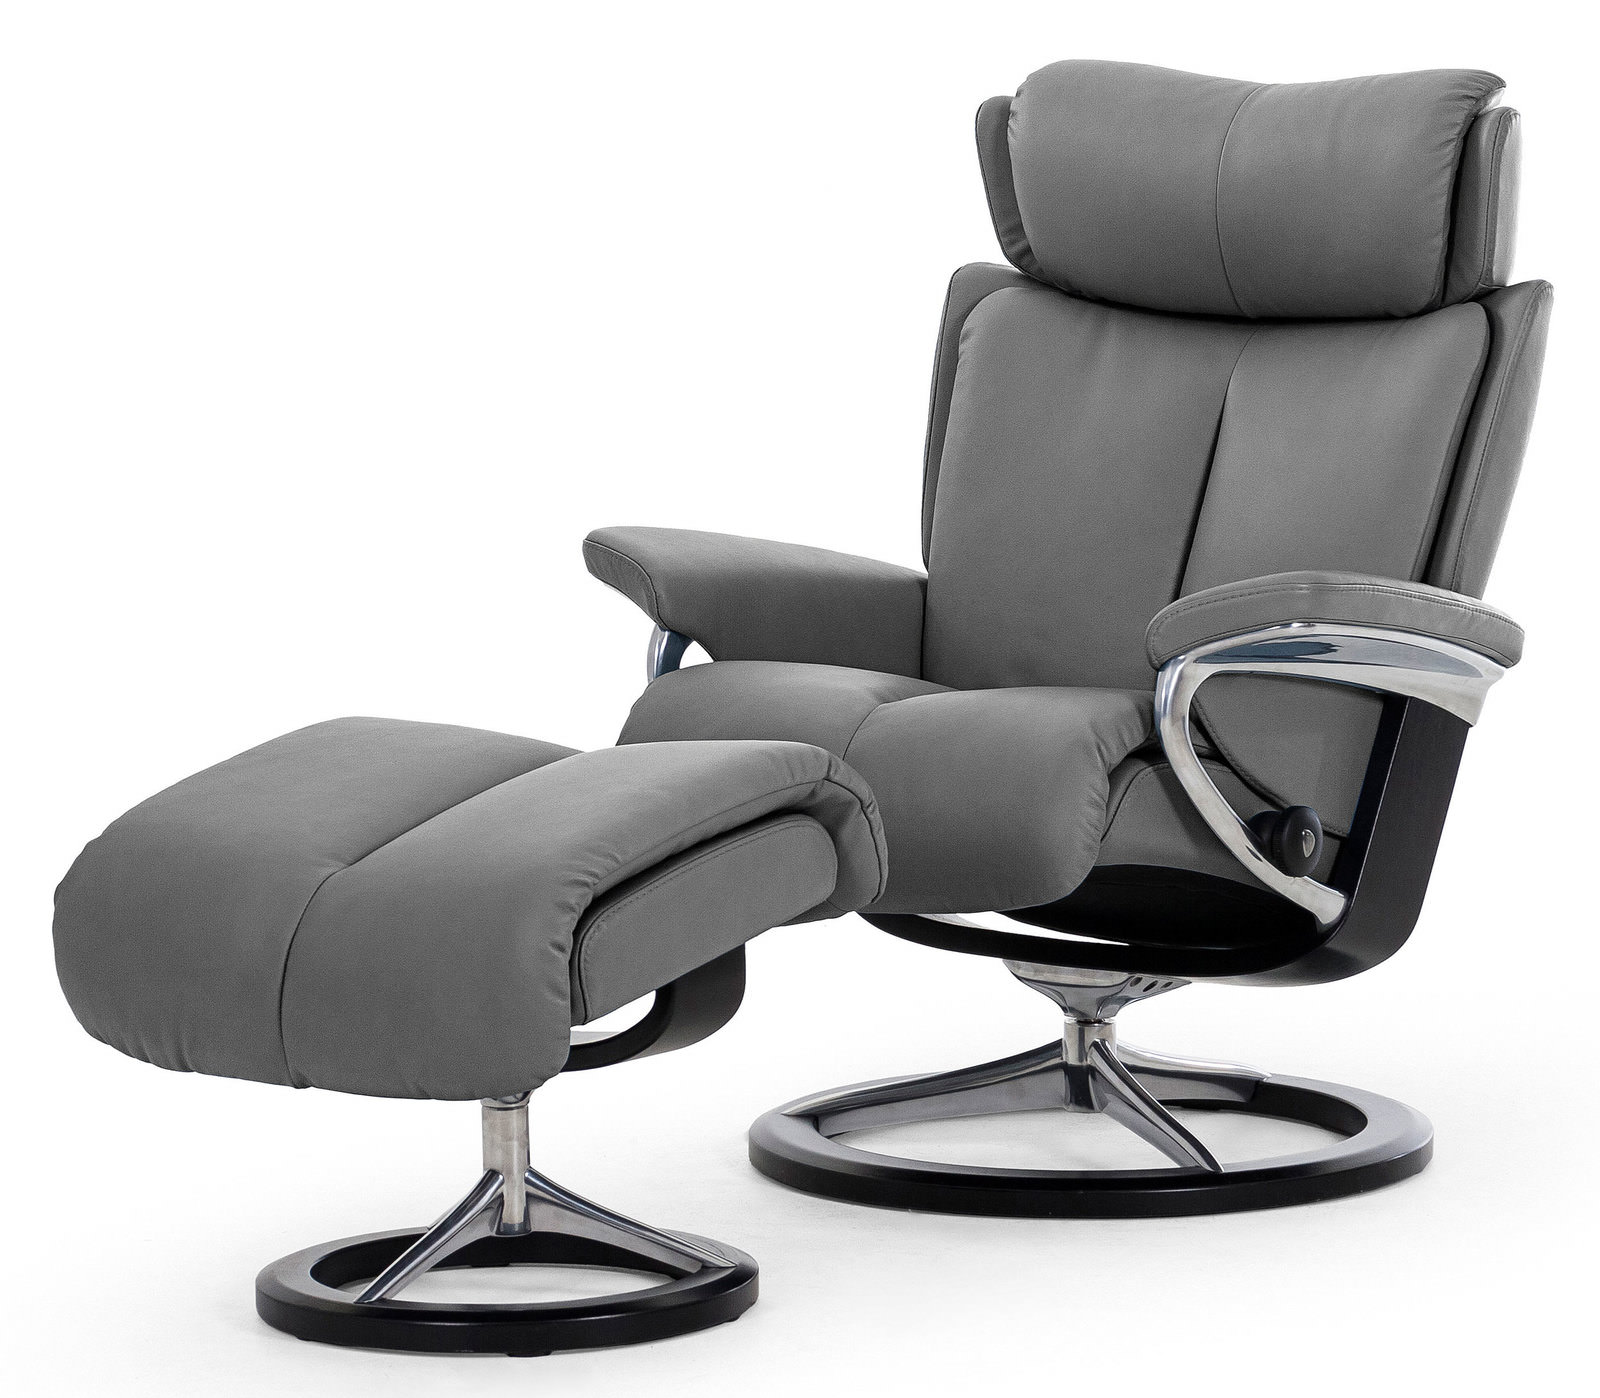 Relaxsessel Stressless Ohne Hocker Stressless Sessel